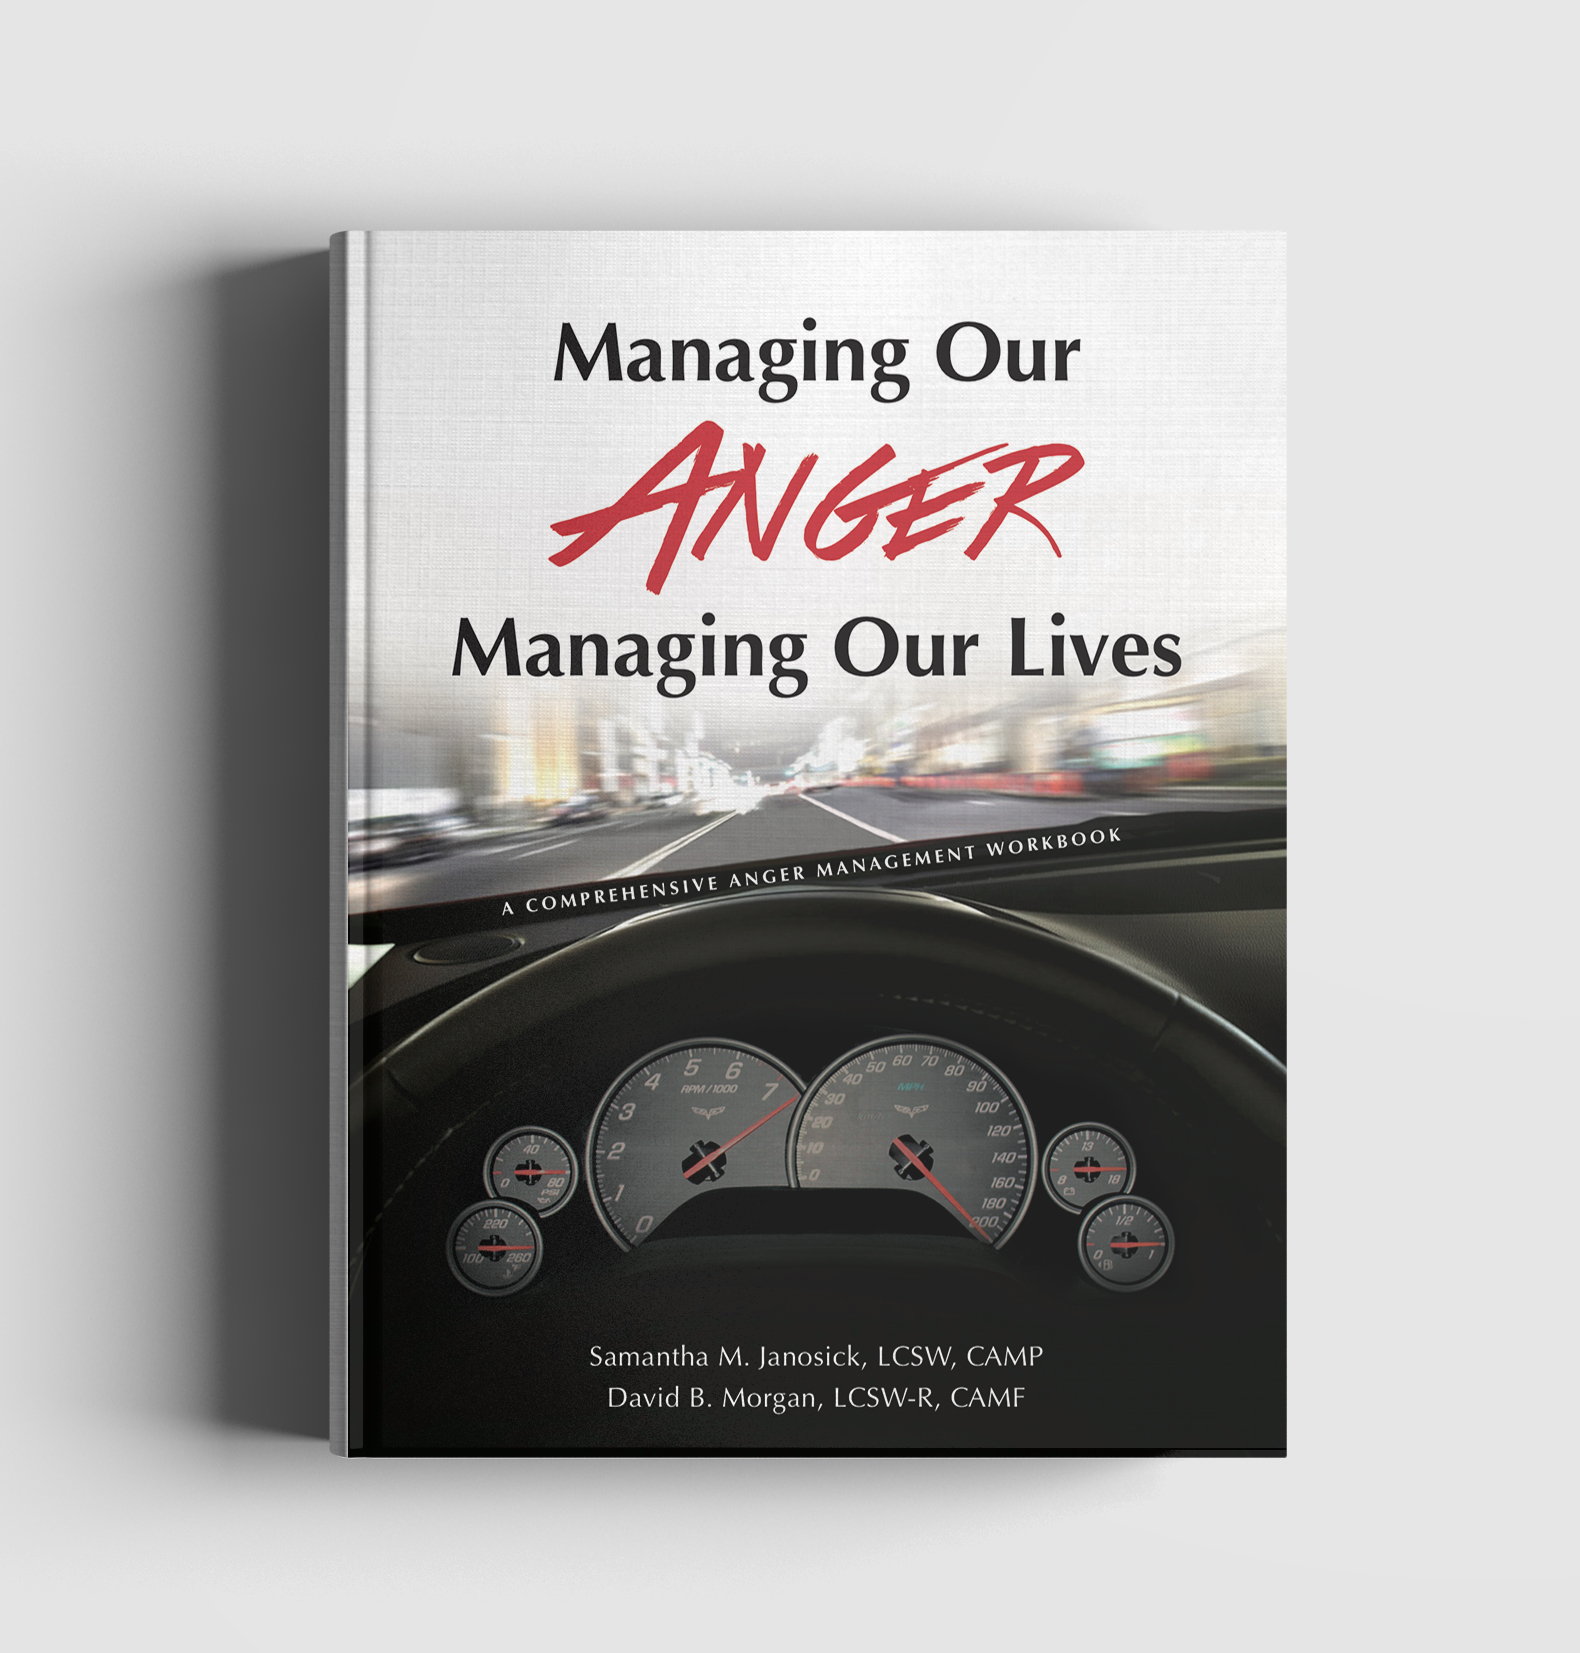 managing our anger book mockup - Products